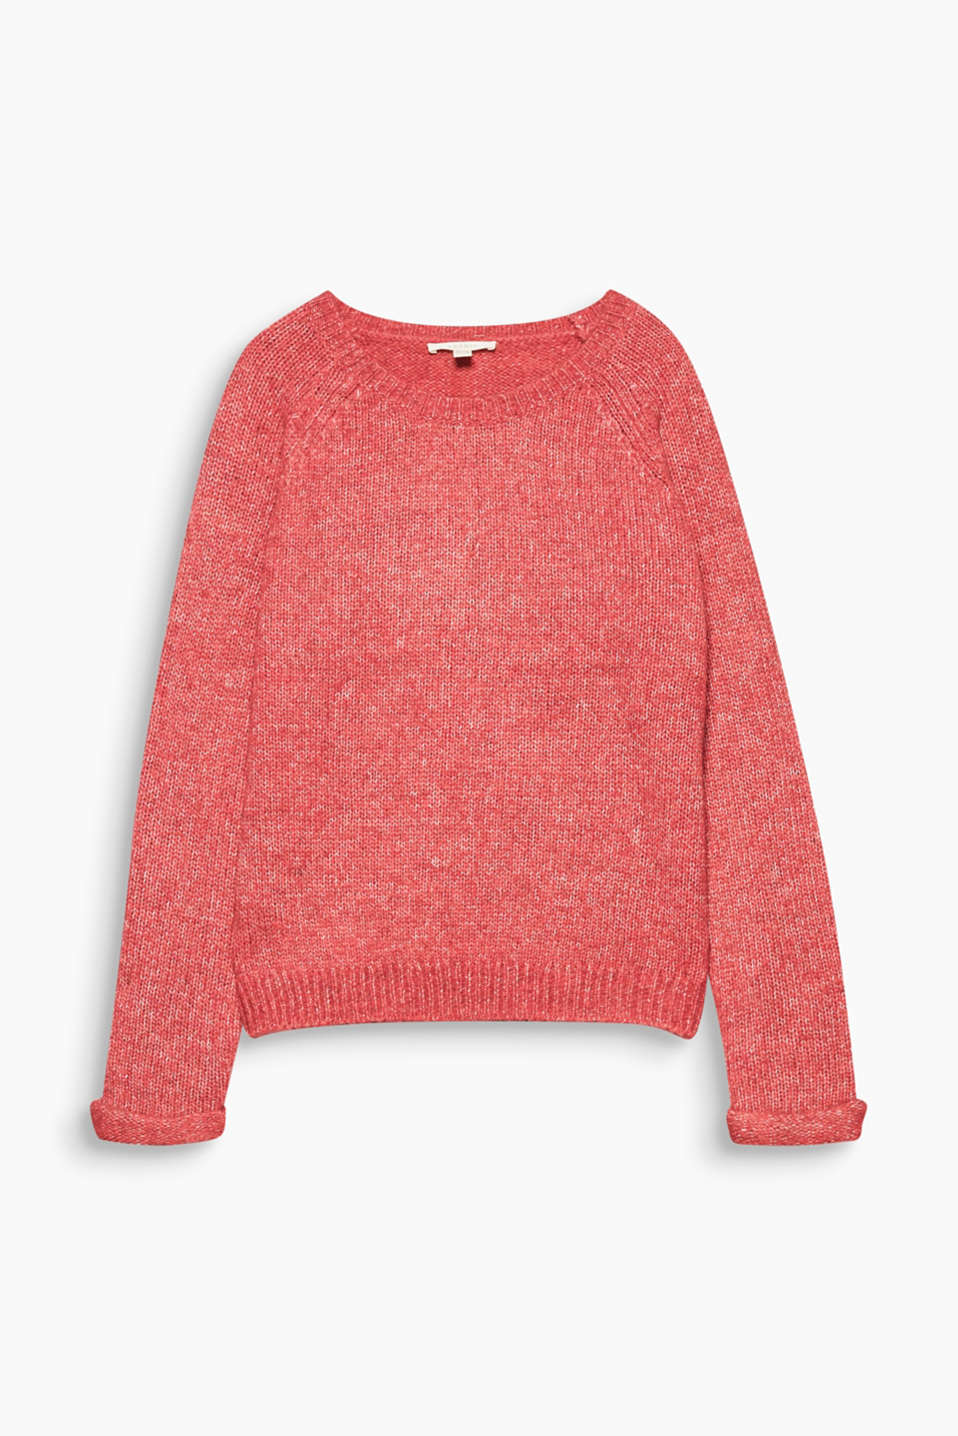 To snuggle up in: Soft round neck jumper in a melange finish and with a warm percentage of alpaca.